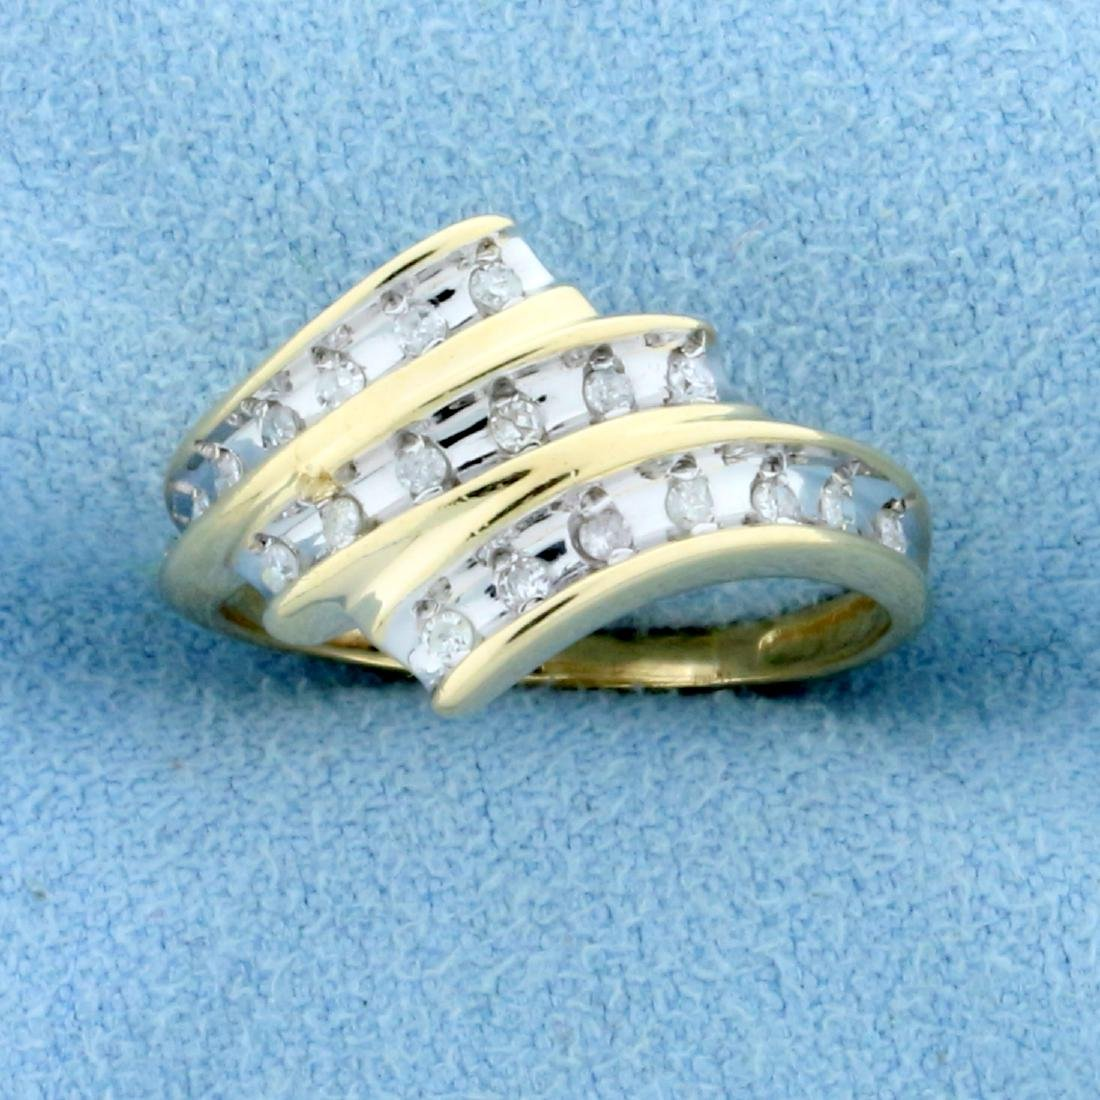 1/4ct TW Diamond Ring in 10K Yellow and White Gold